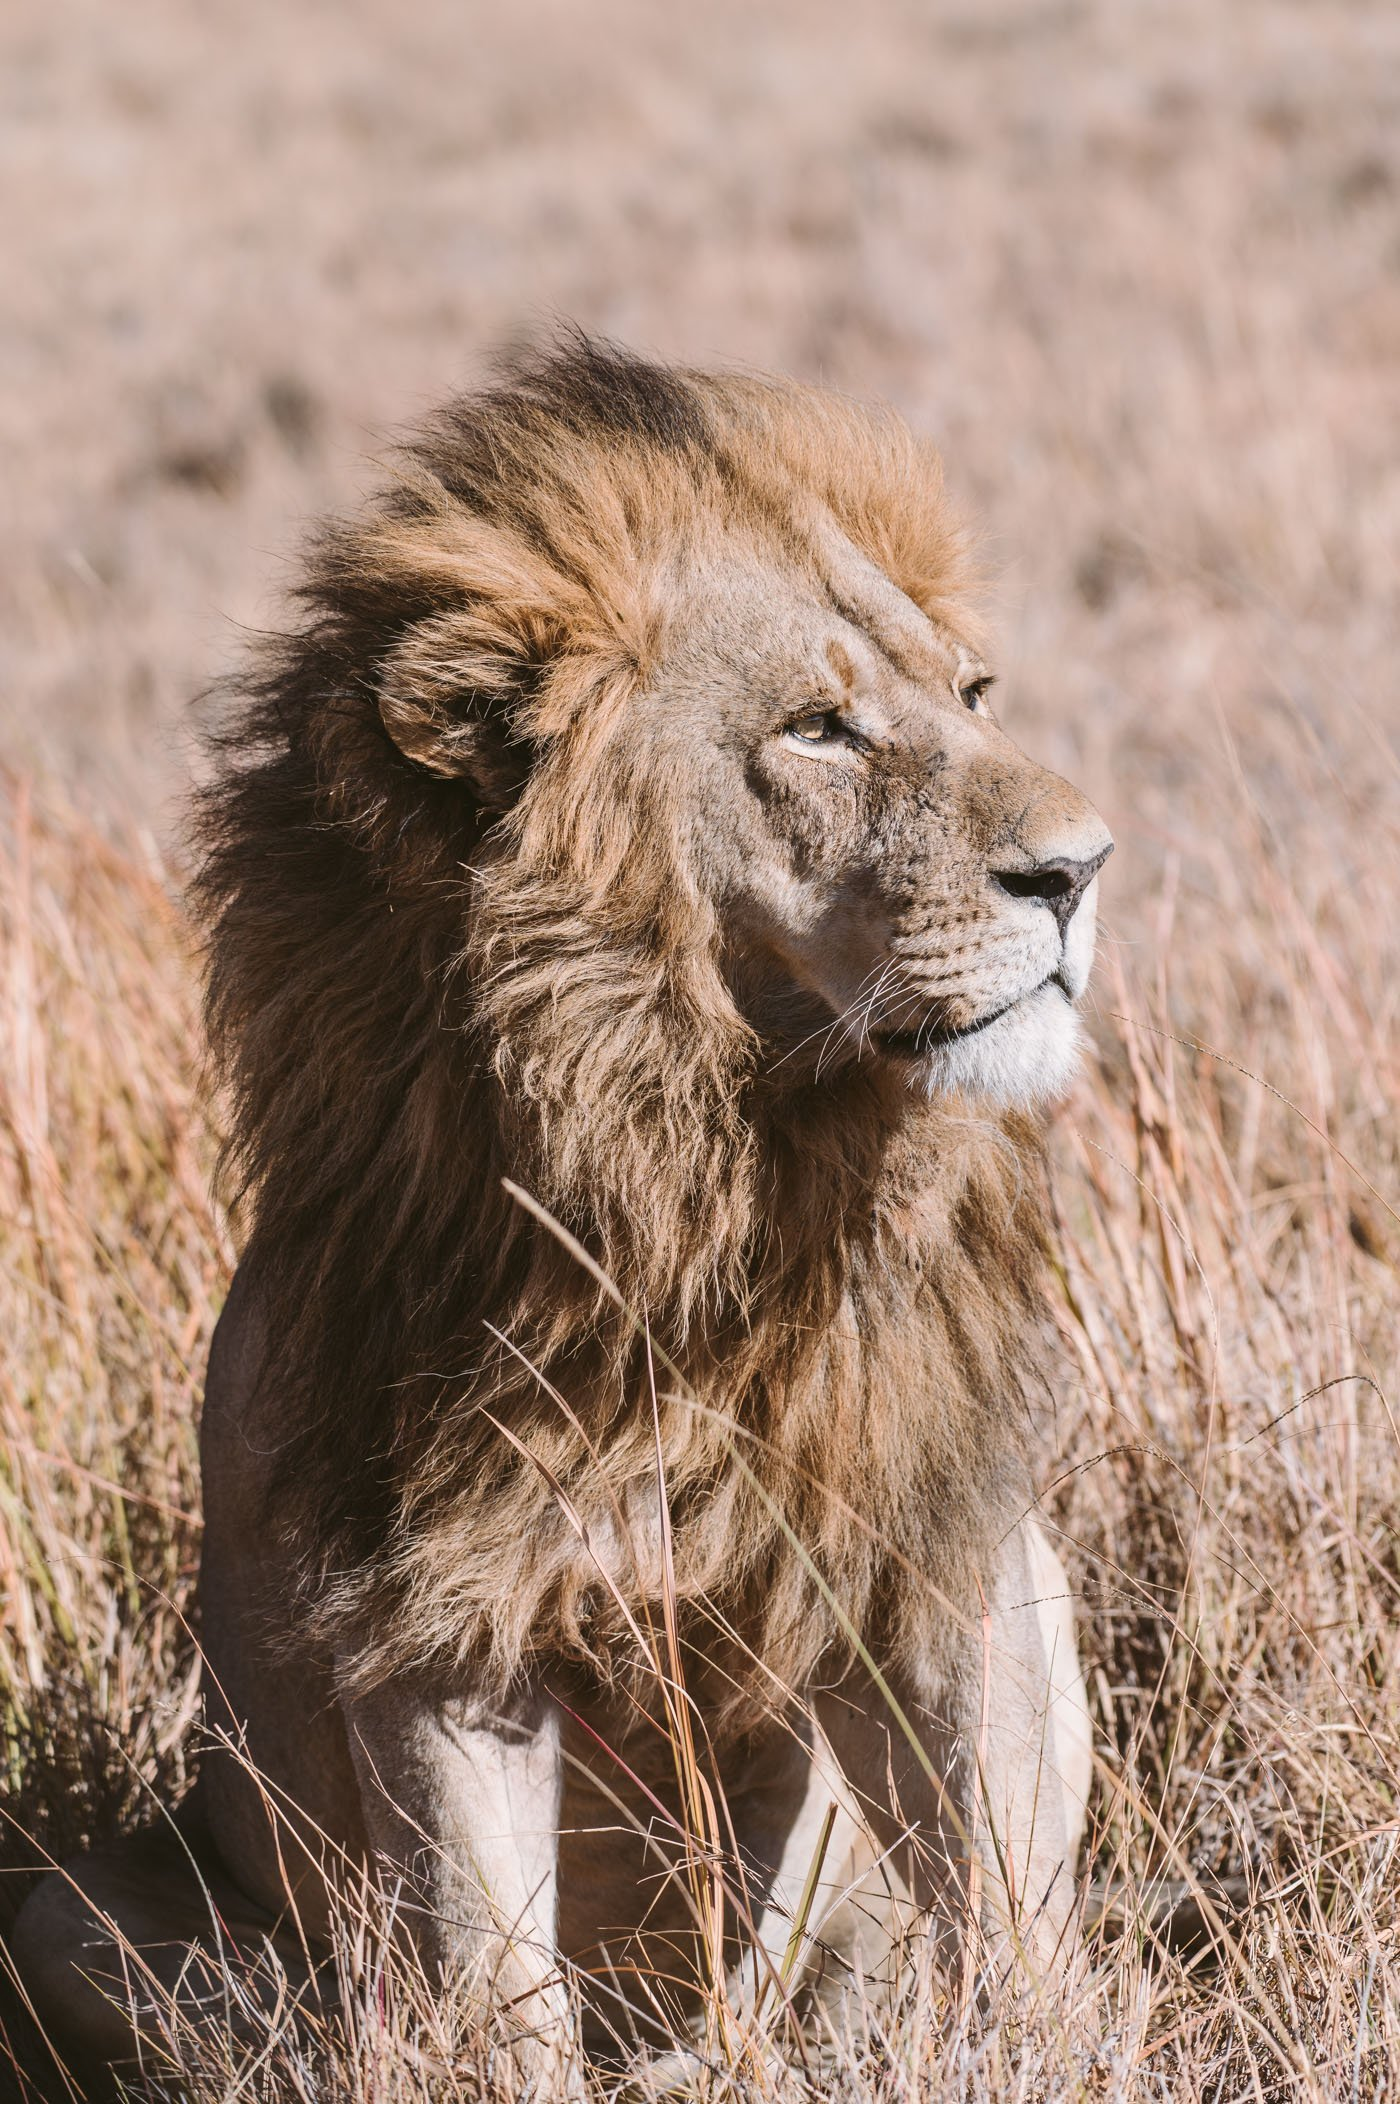 Lion in the Okavango Delta in Botswana